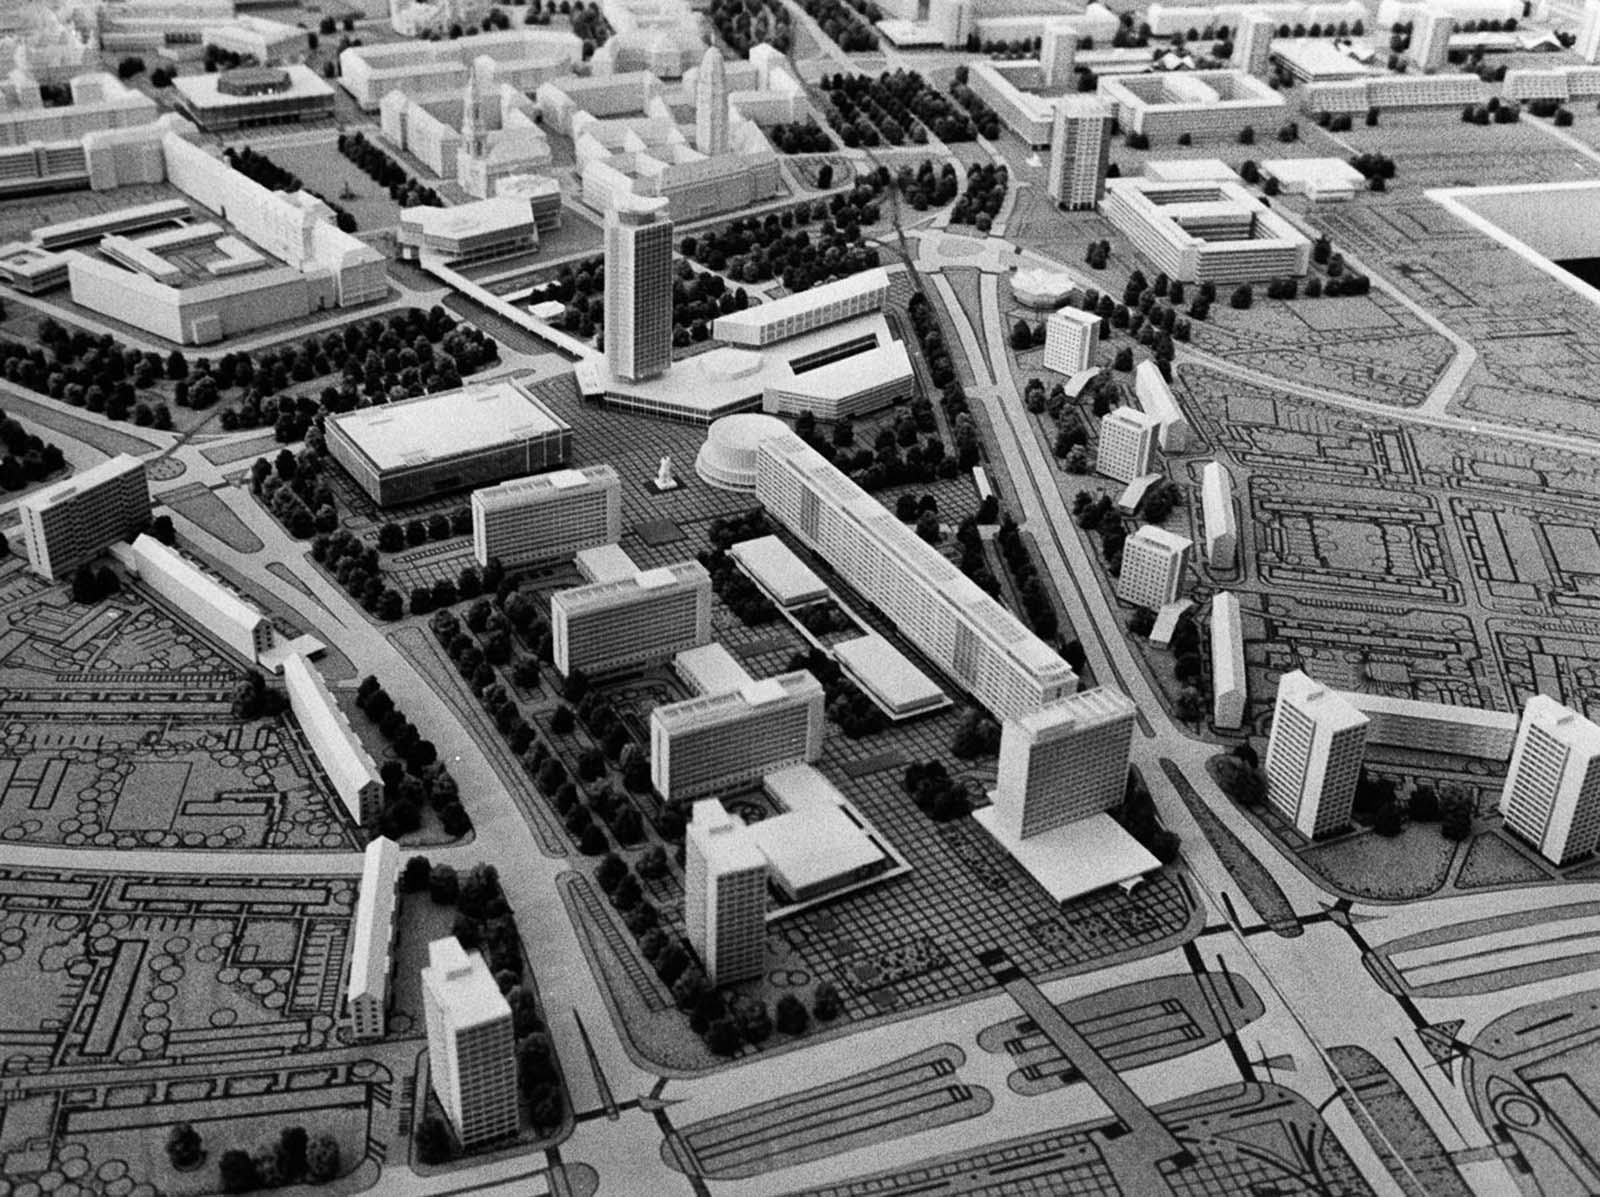 A model of planned construction in the city center. 1969.